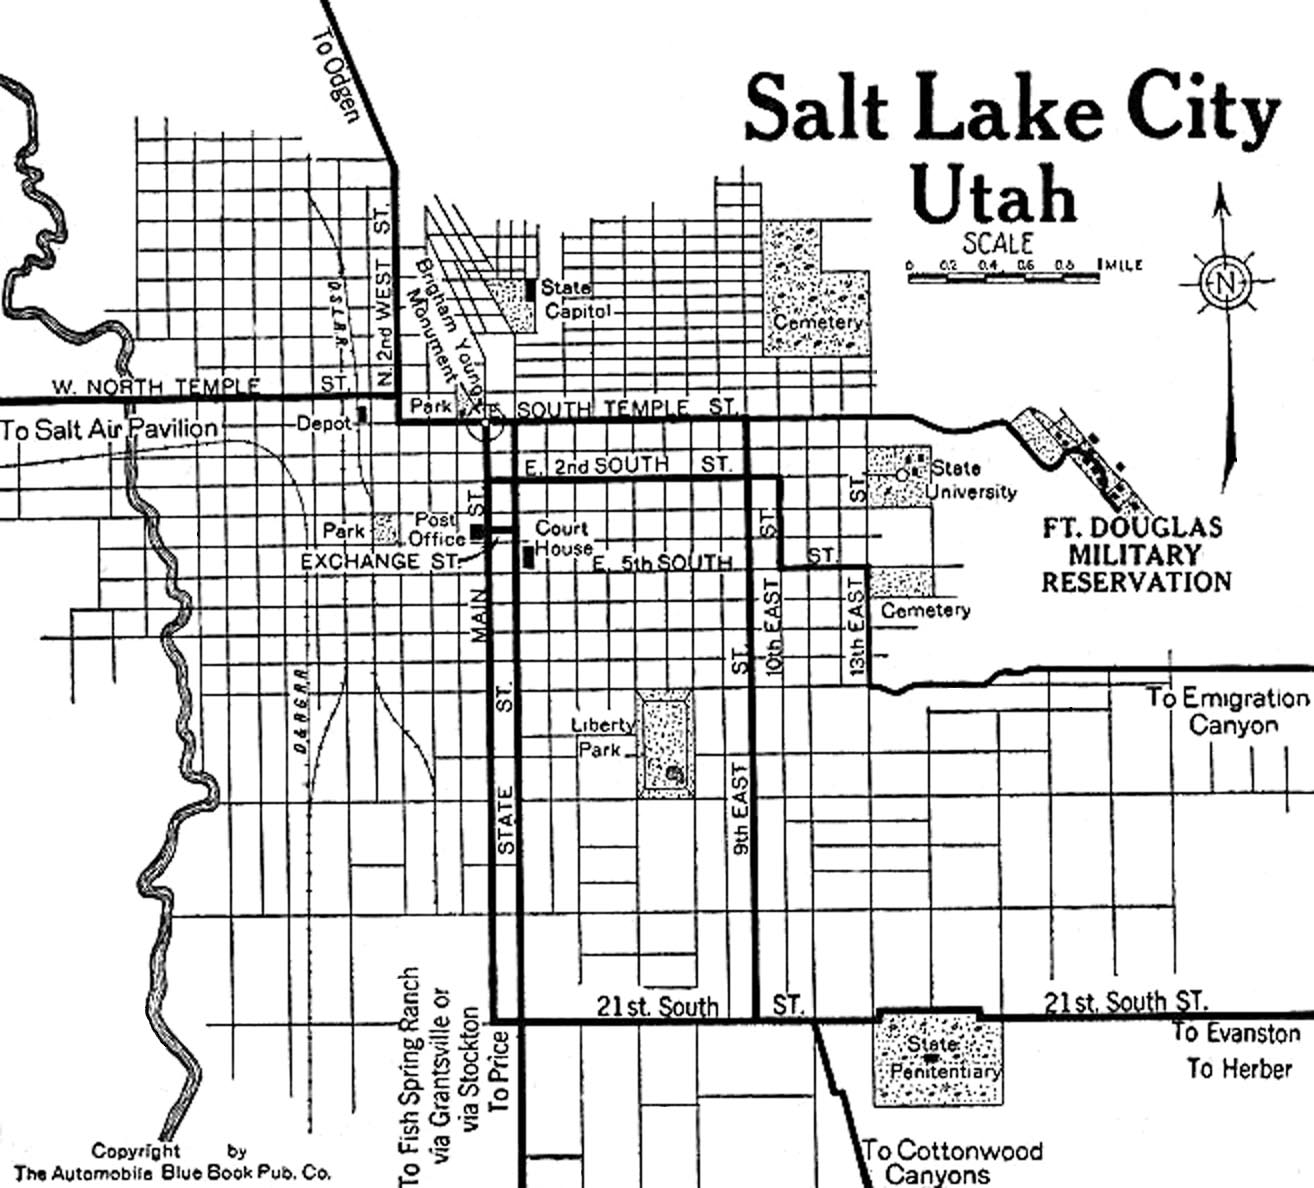 Utah City Maps at AmericanRoads.com Salt Lake City Utah On Usa Map on salt lake city va map, snowbird utah map, sioux city iowa on usa map, salt lake city on a state map, salt lake city streetcar map, salt lake city utah area map, salt lake city with map of america, southern utah tourism map, salt lake city zip code map, sandy utah on usa map, utah airports map, snowbird mountains north carolina map, salt lake city on us map, great salt lake map, lake city street map, salt lake city parking map, utah road map, kansas city missouri on usa map, ogden utah on usa map,